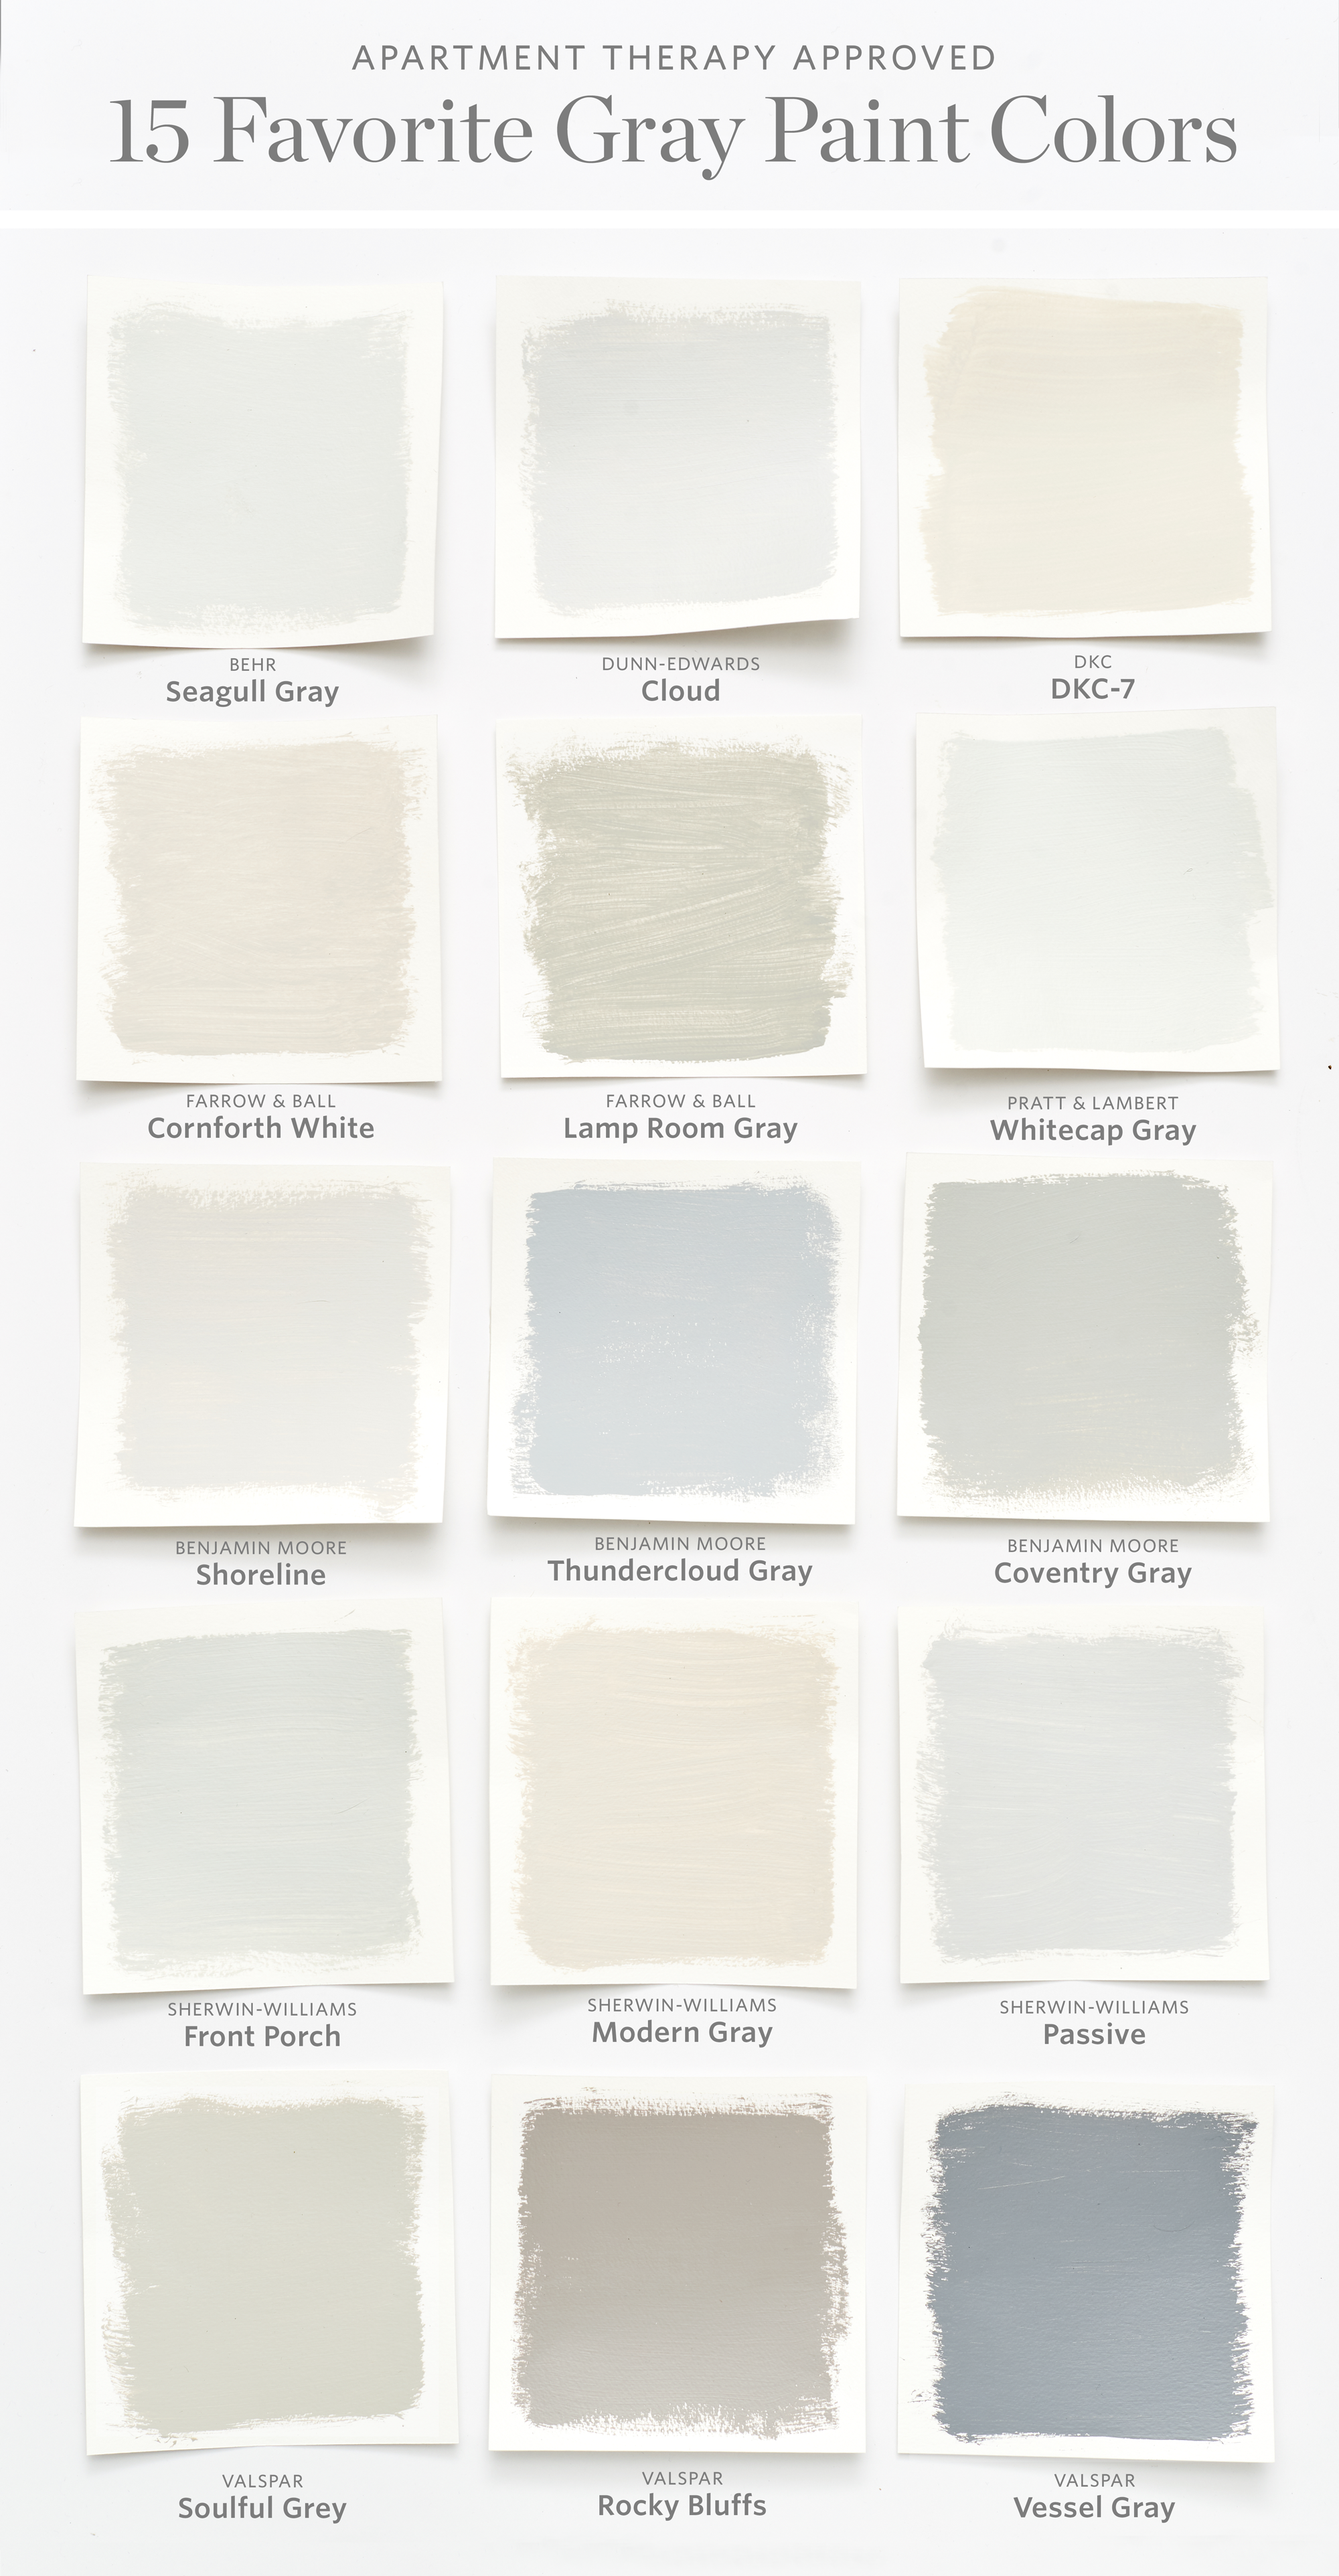 15 Best Gray Paint Colors Why They Re Perfect For Your Walls Apartment Therapy,My Toxic Baby Documentary Watch